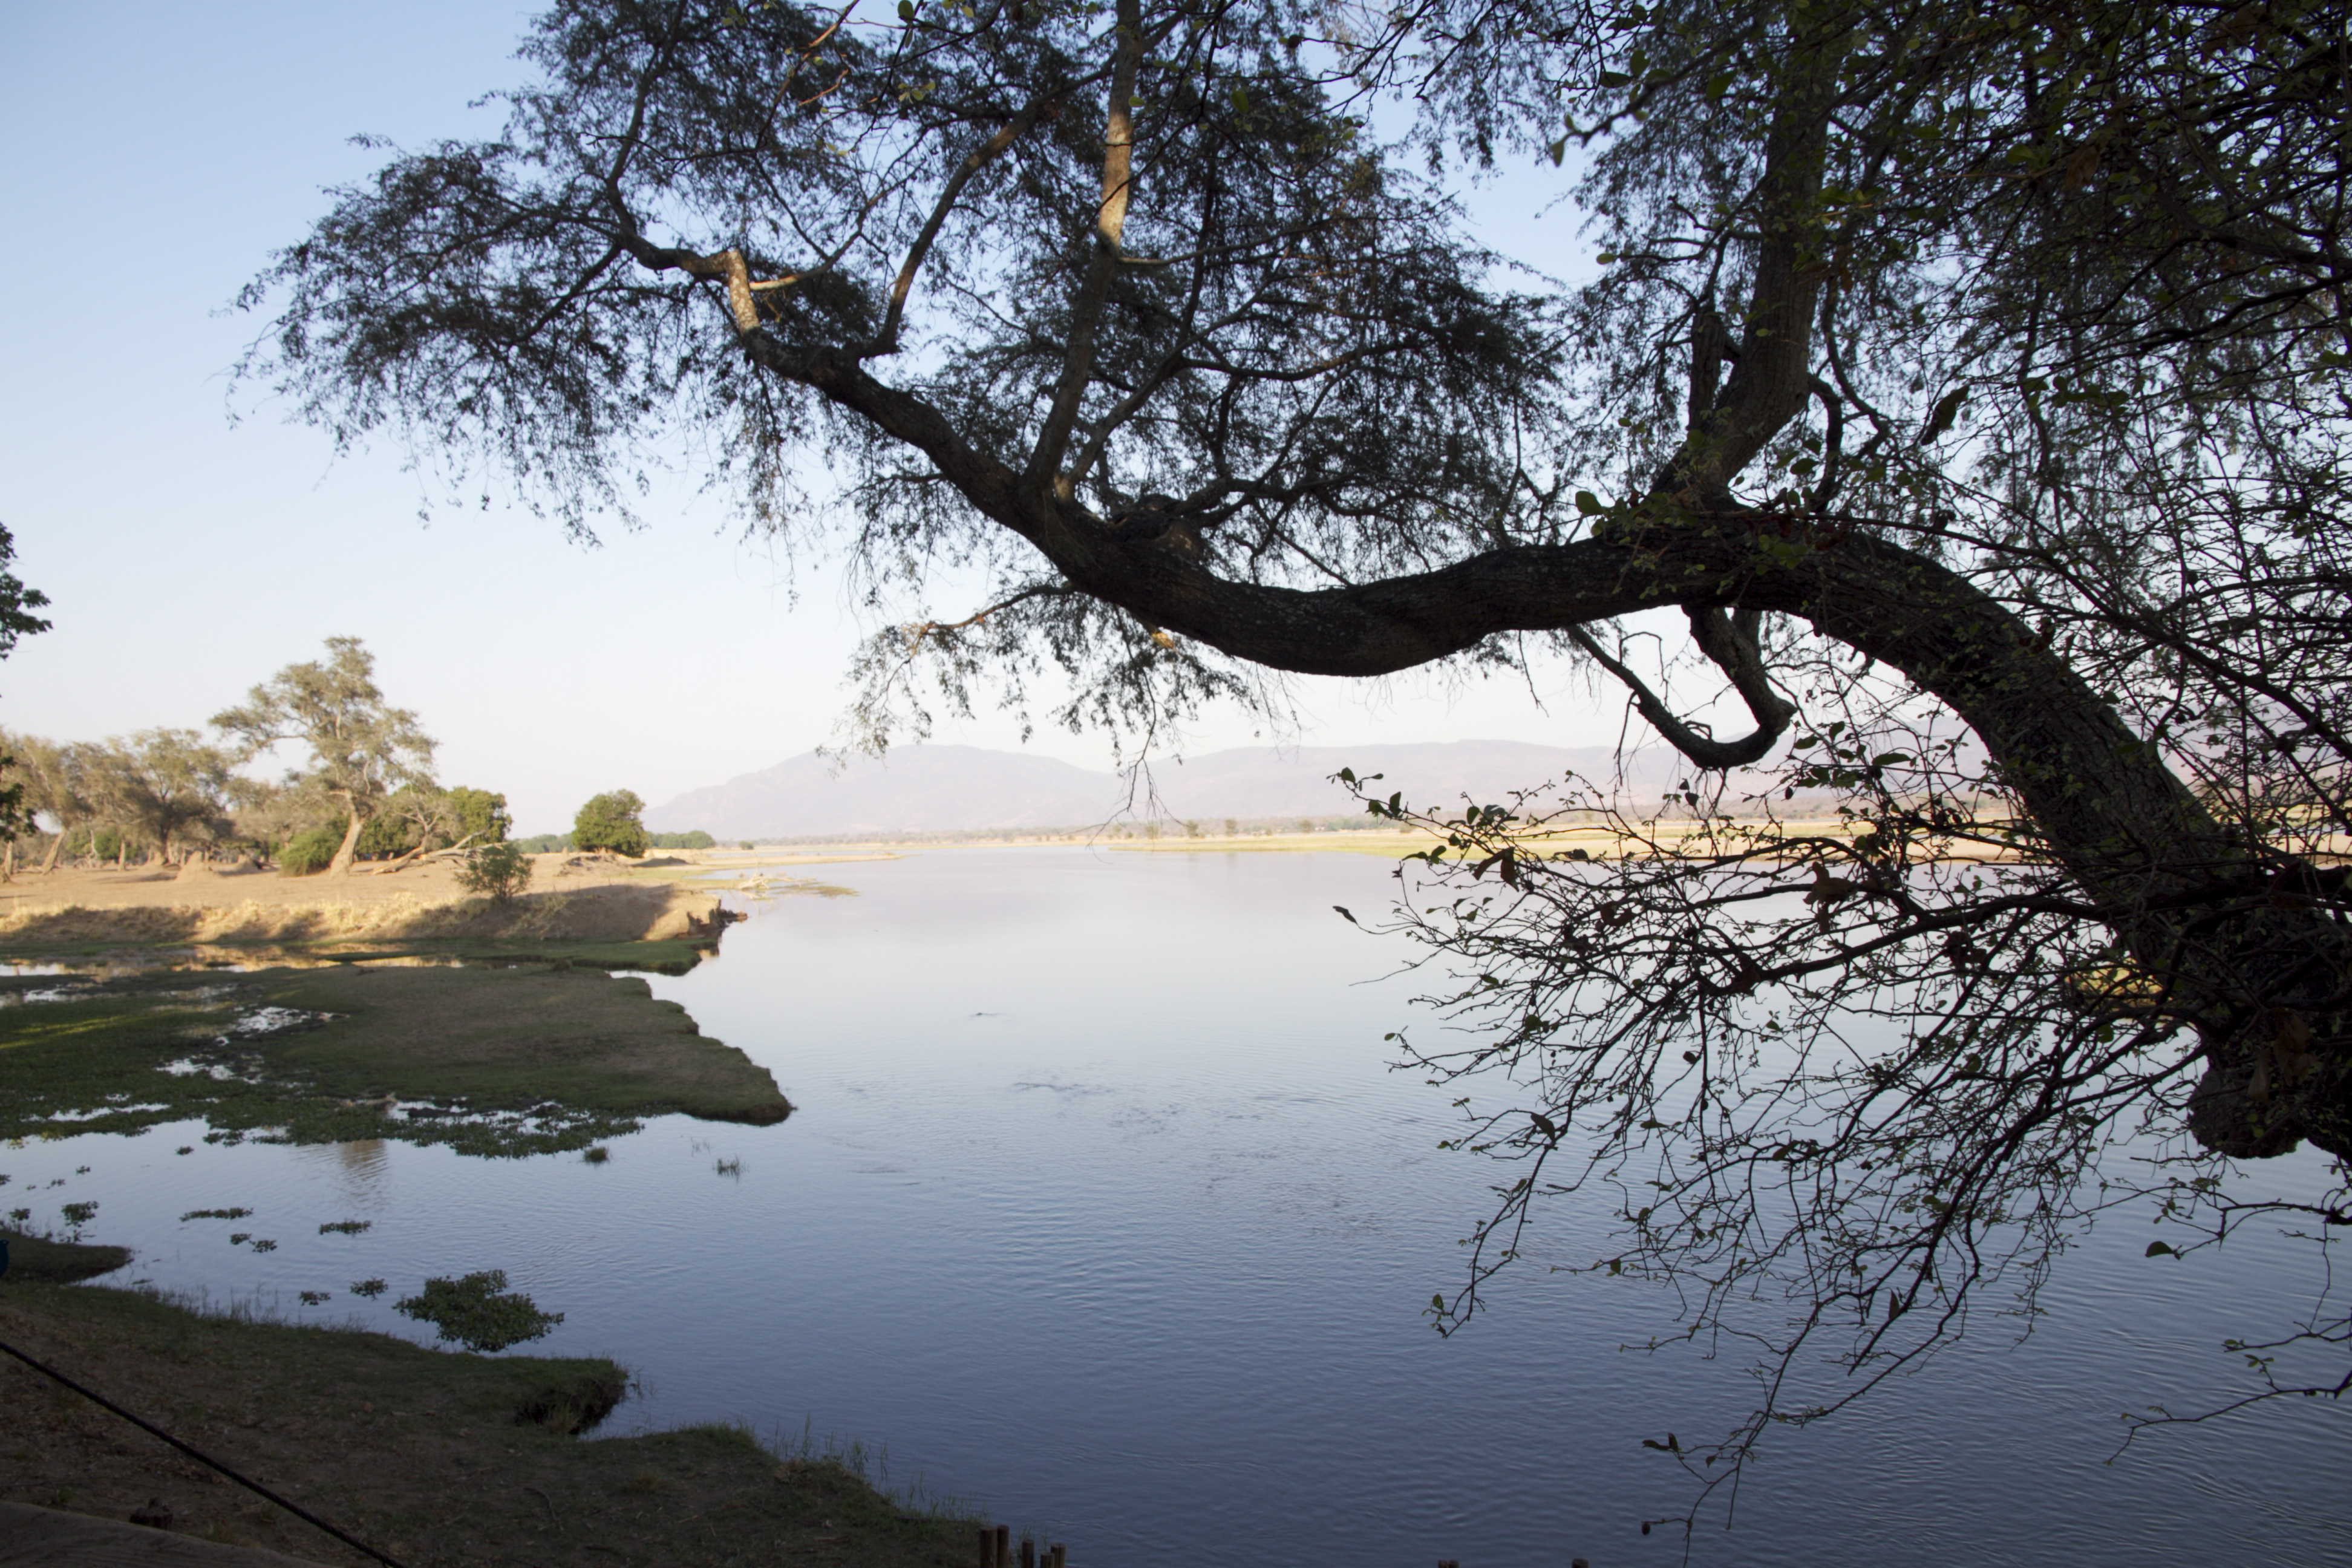 Le mythique Zambèze, photo Christian Dero, Zimbabwe, Mana Pools